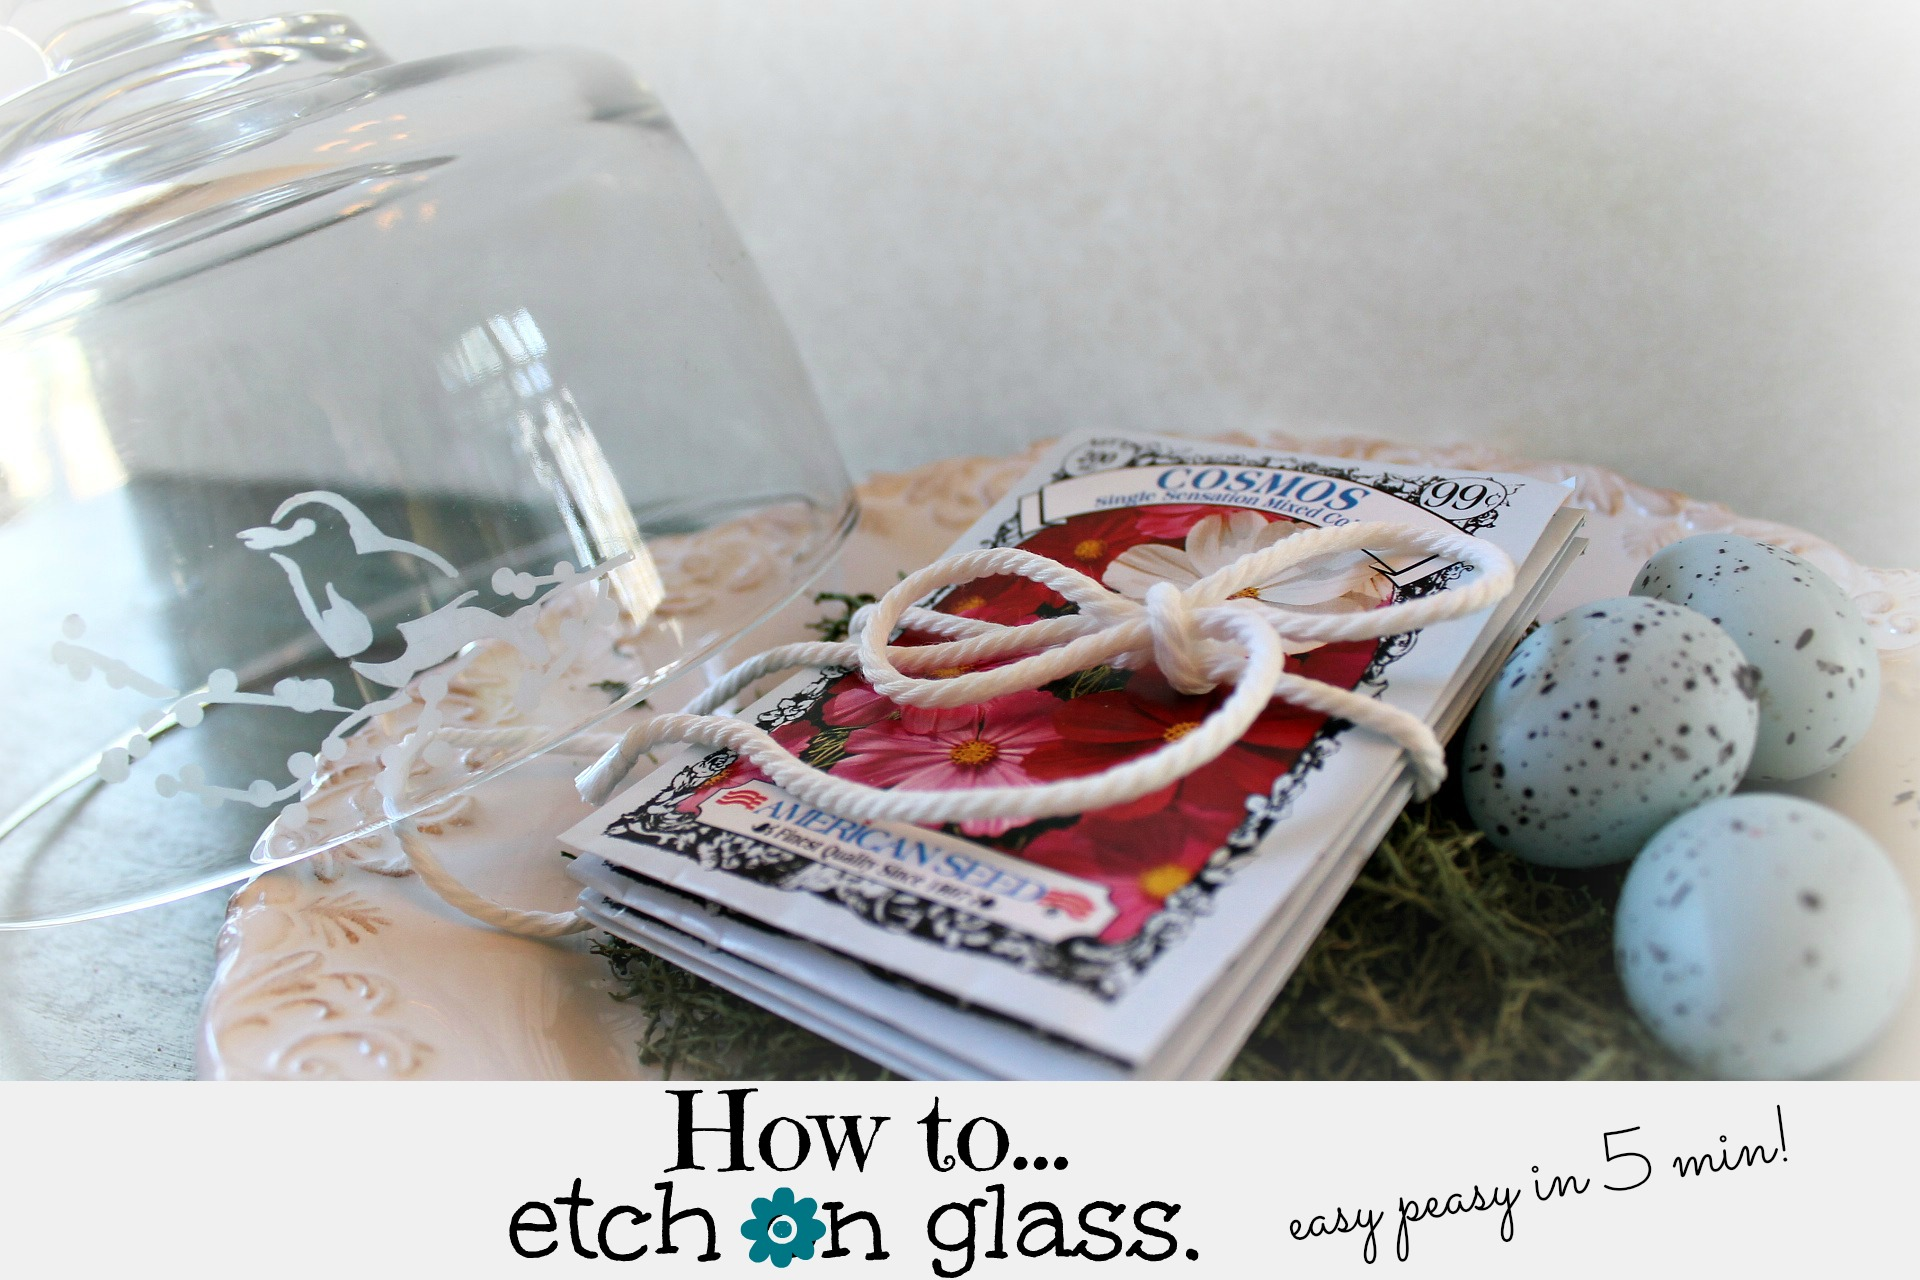 How to etch on glass